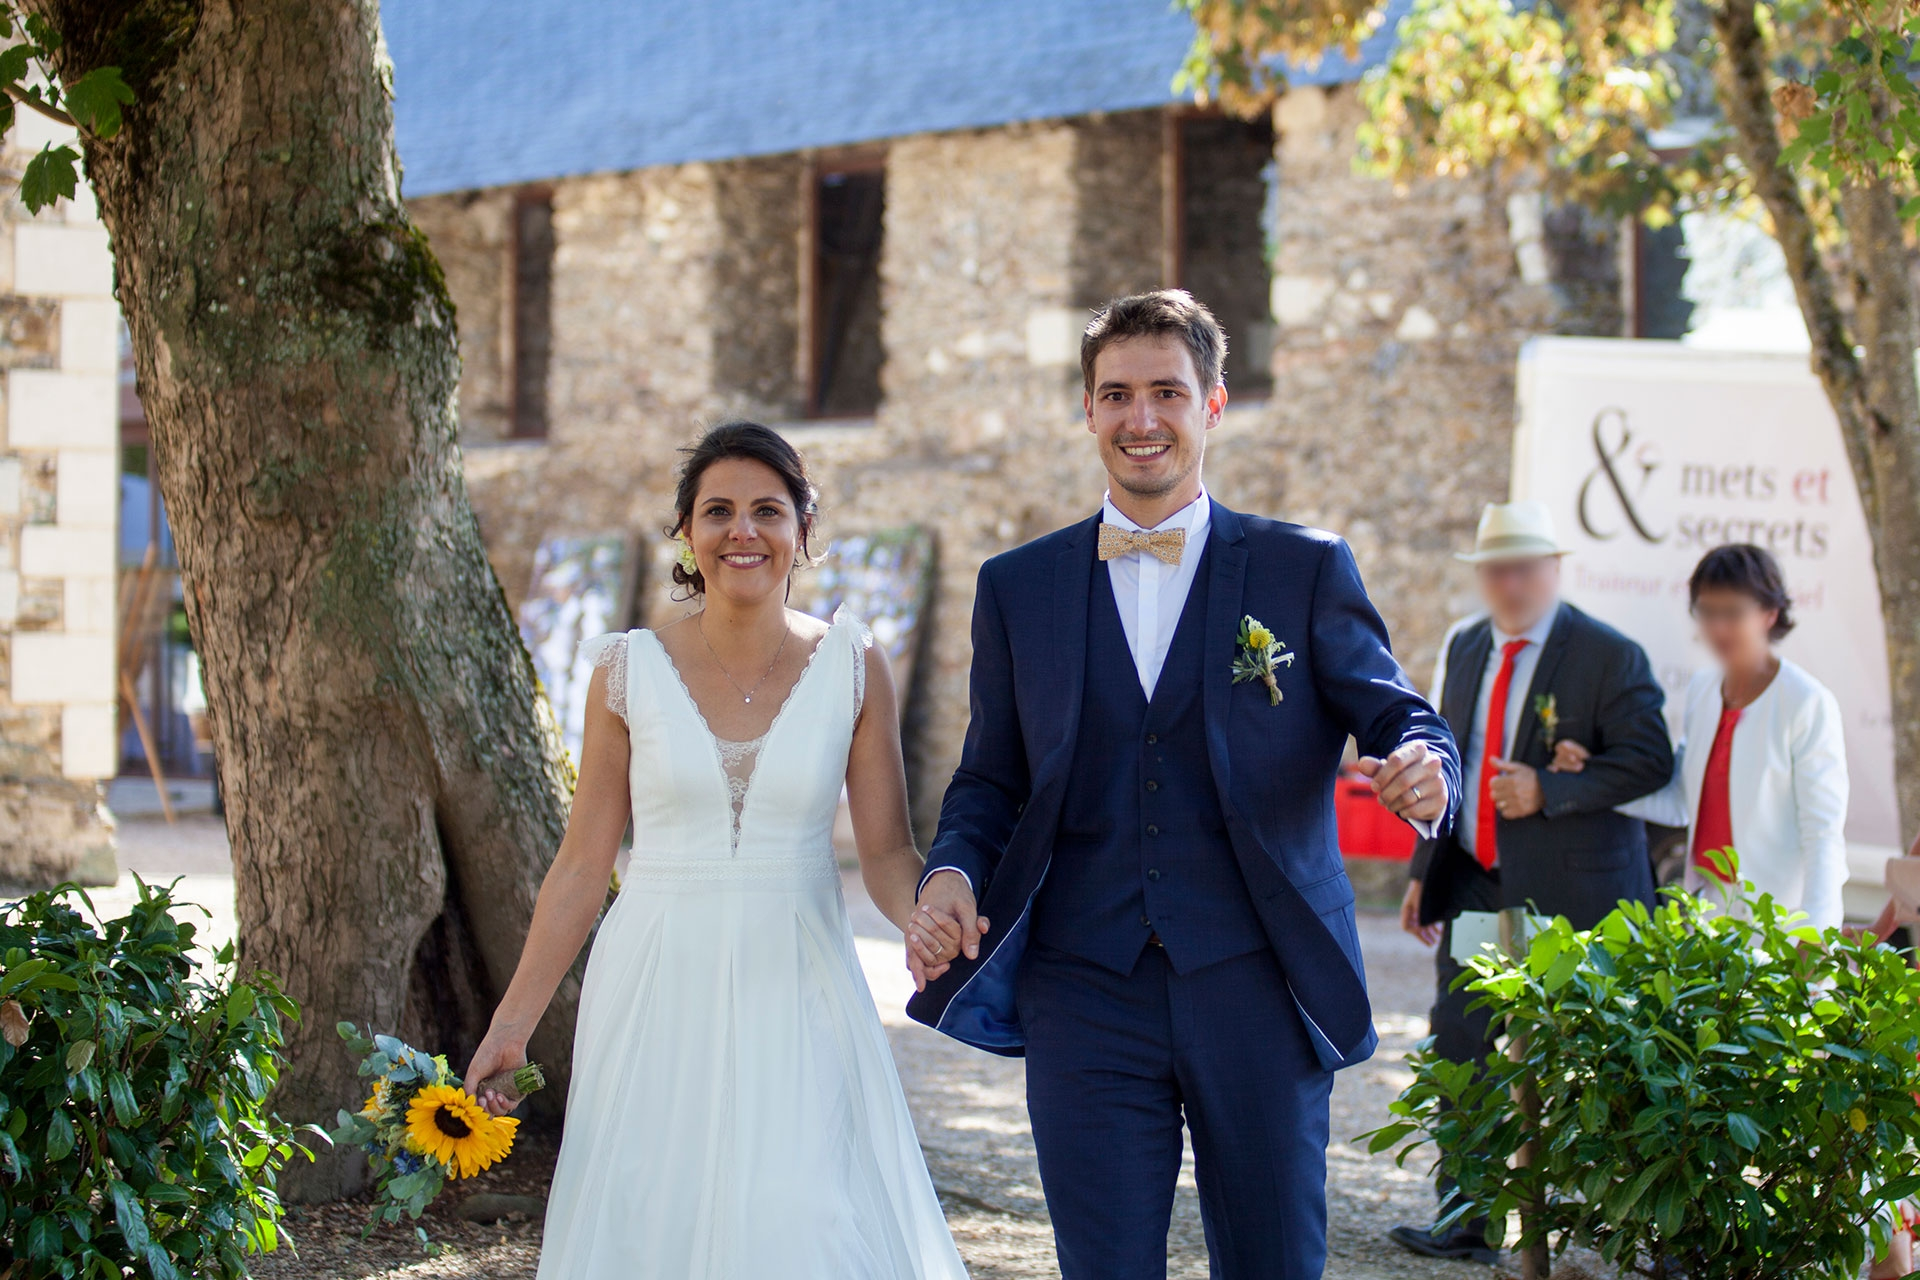 particuliers-evenements-mariage-oui-elise&quentin-52